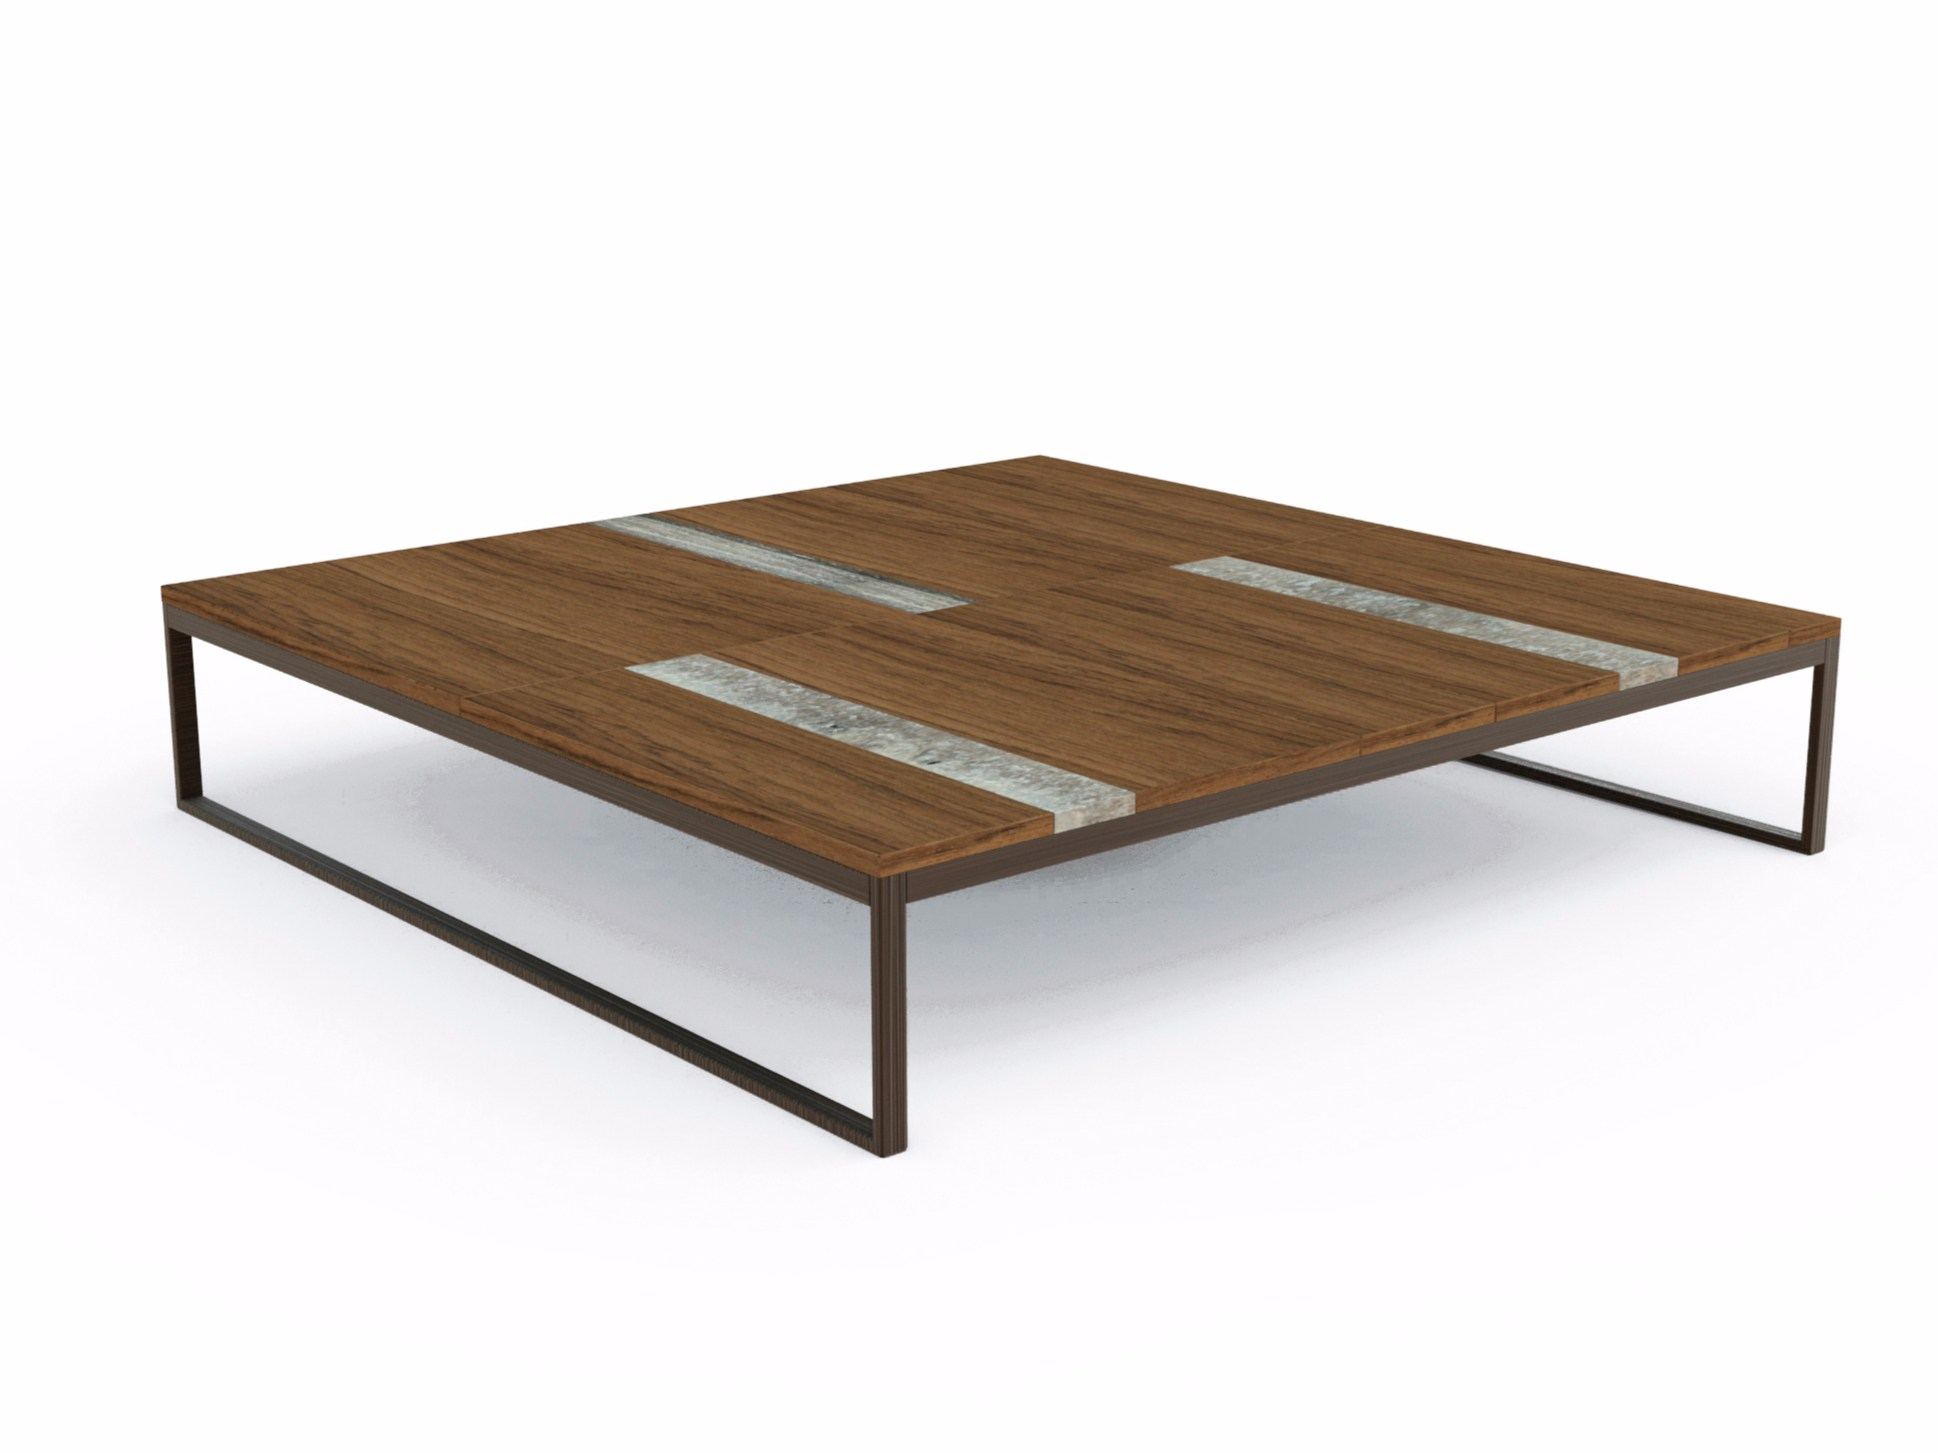 Badar coffee table collection couture outdoor Collectors coffee table